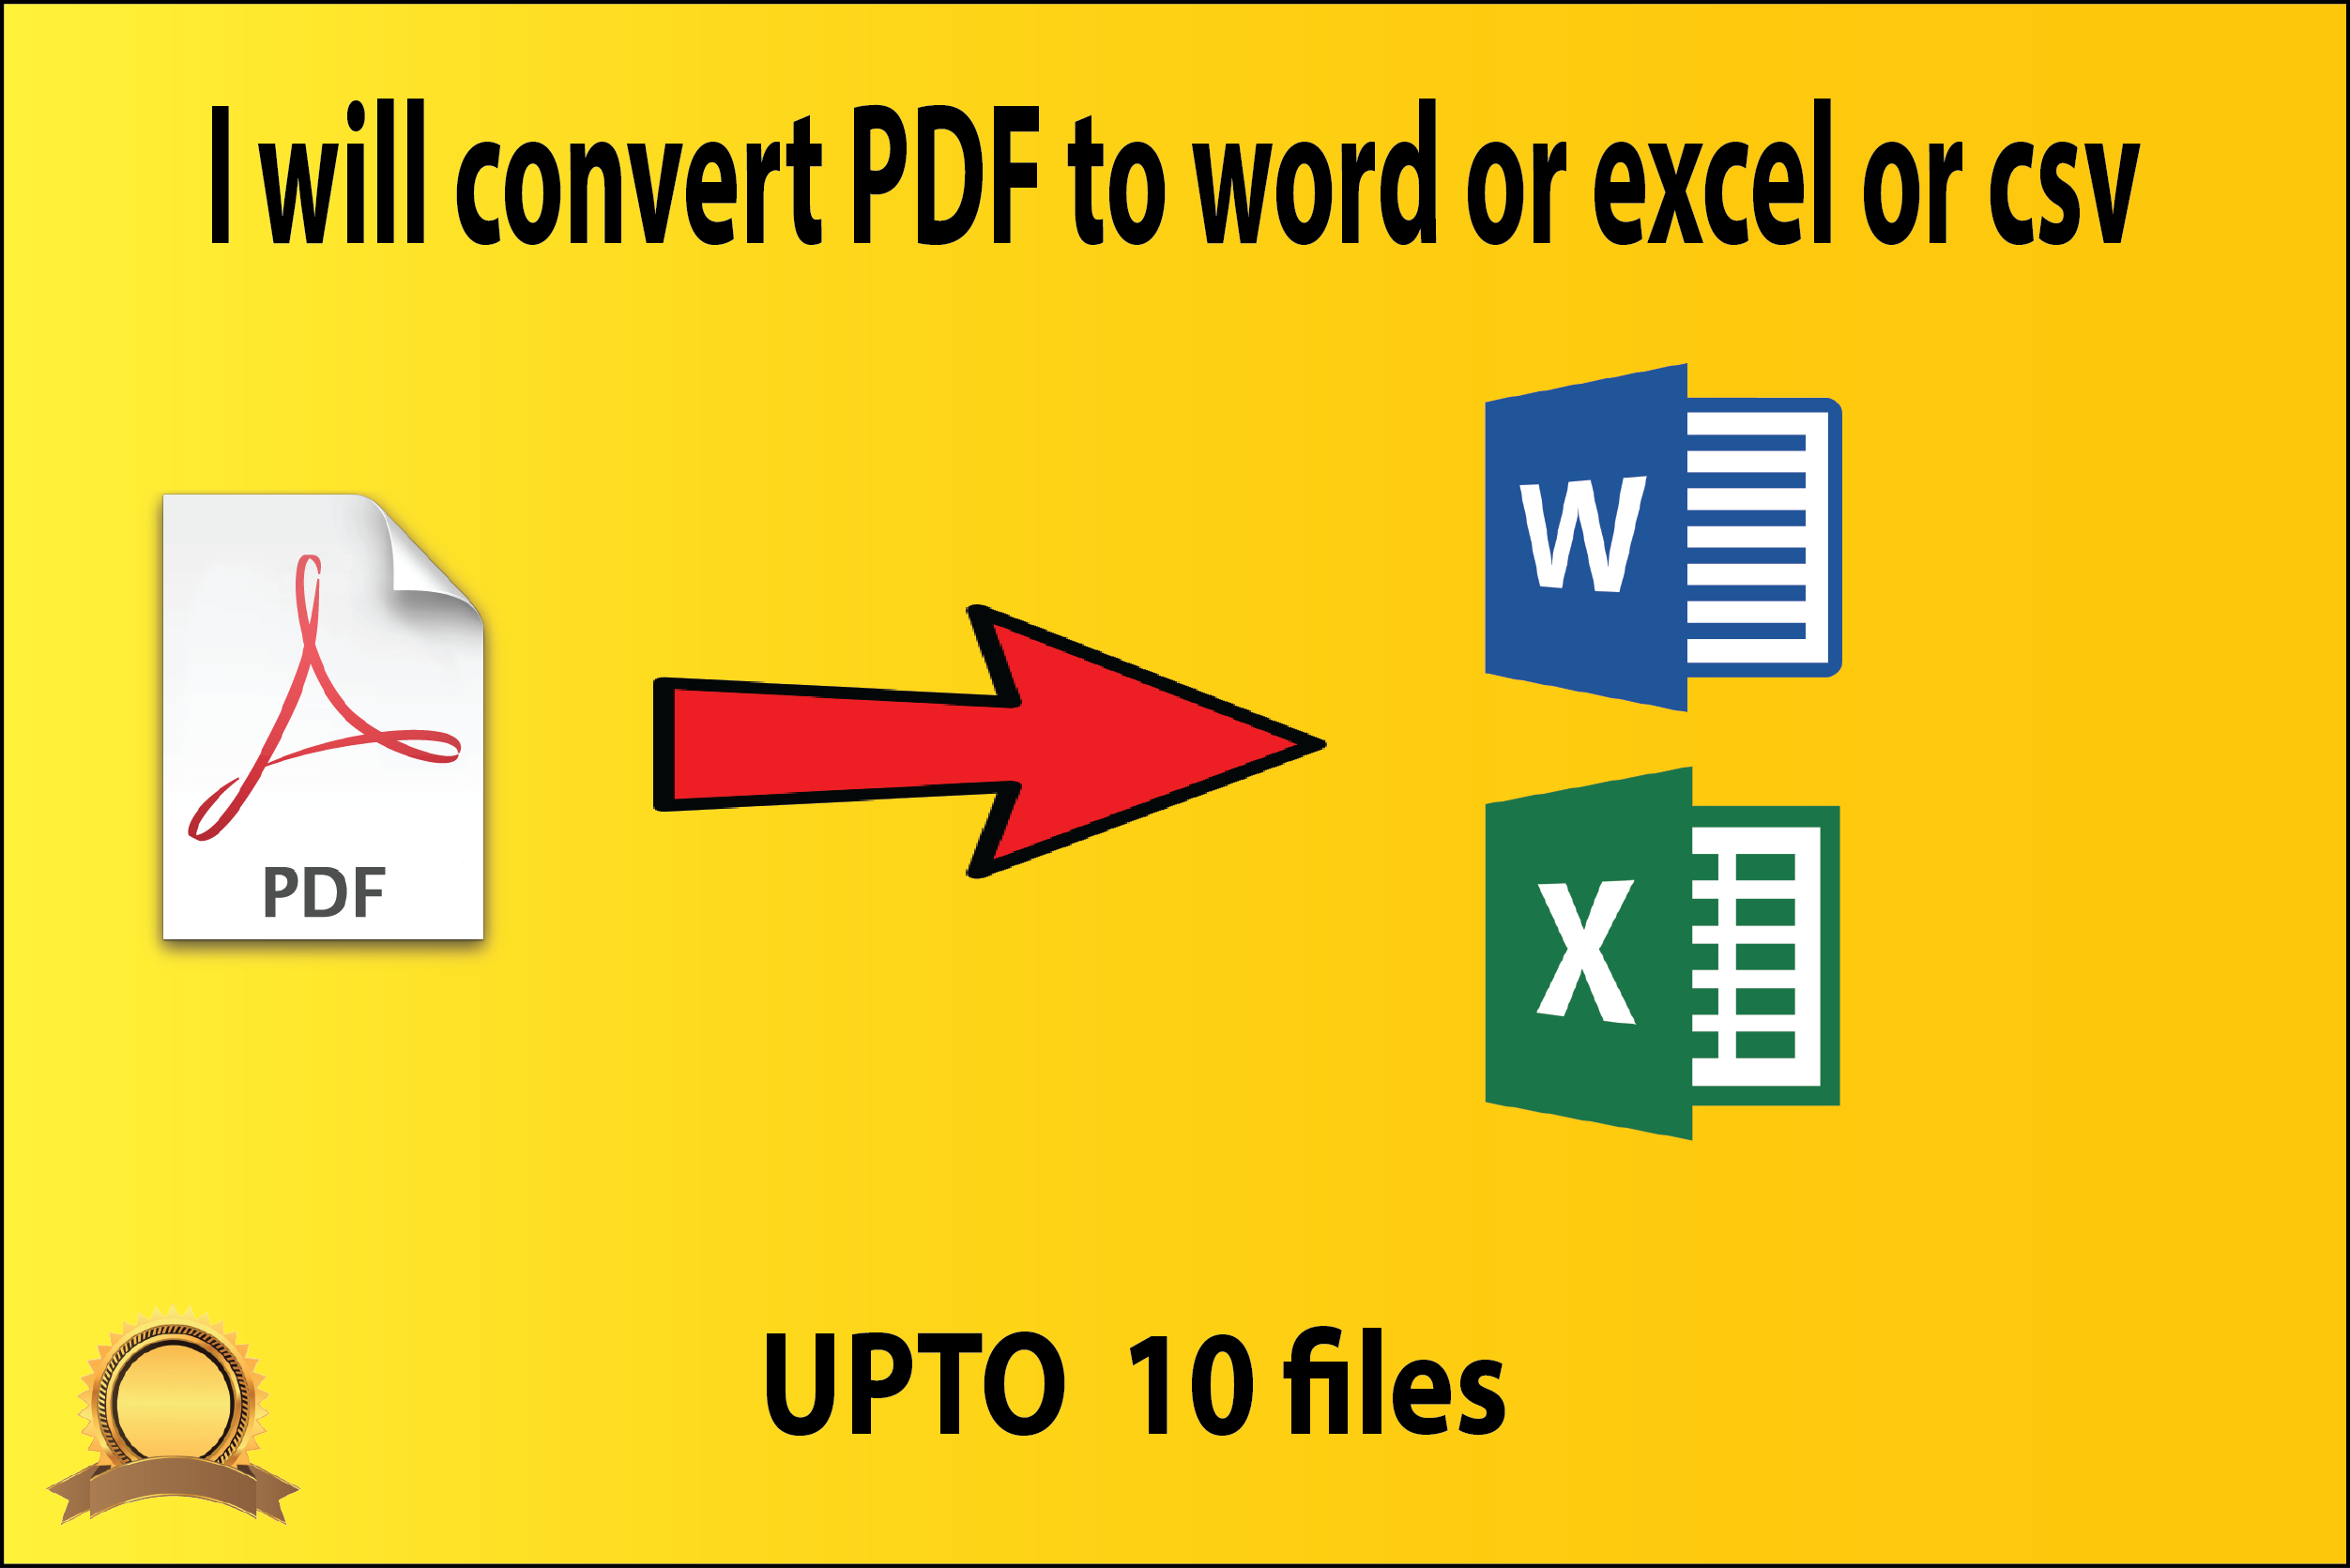 I will convert PDF to word or excel or csv